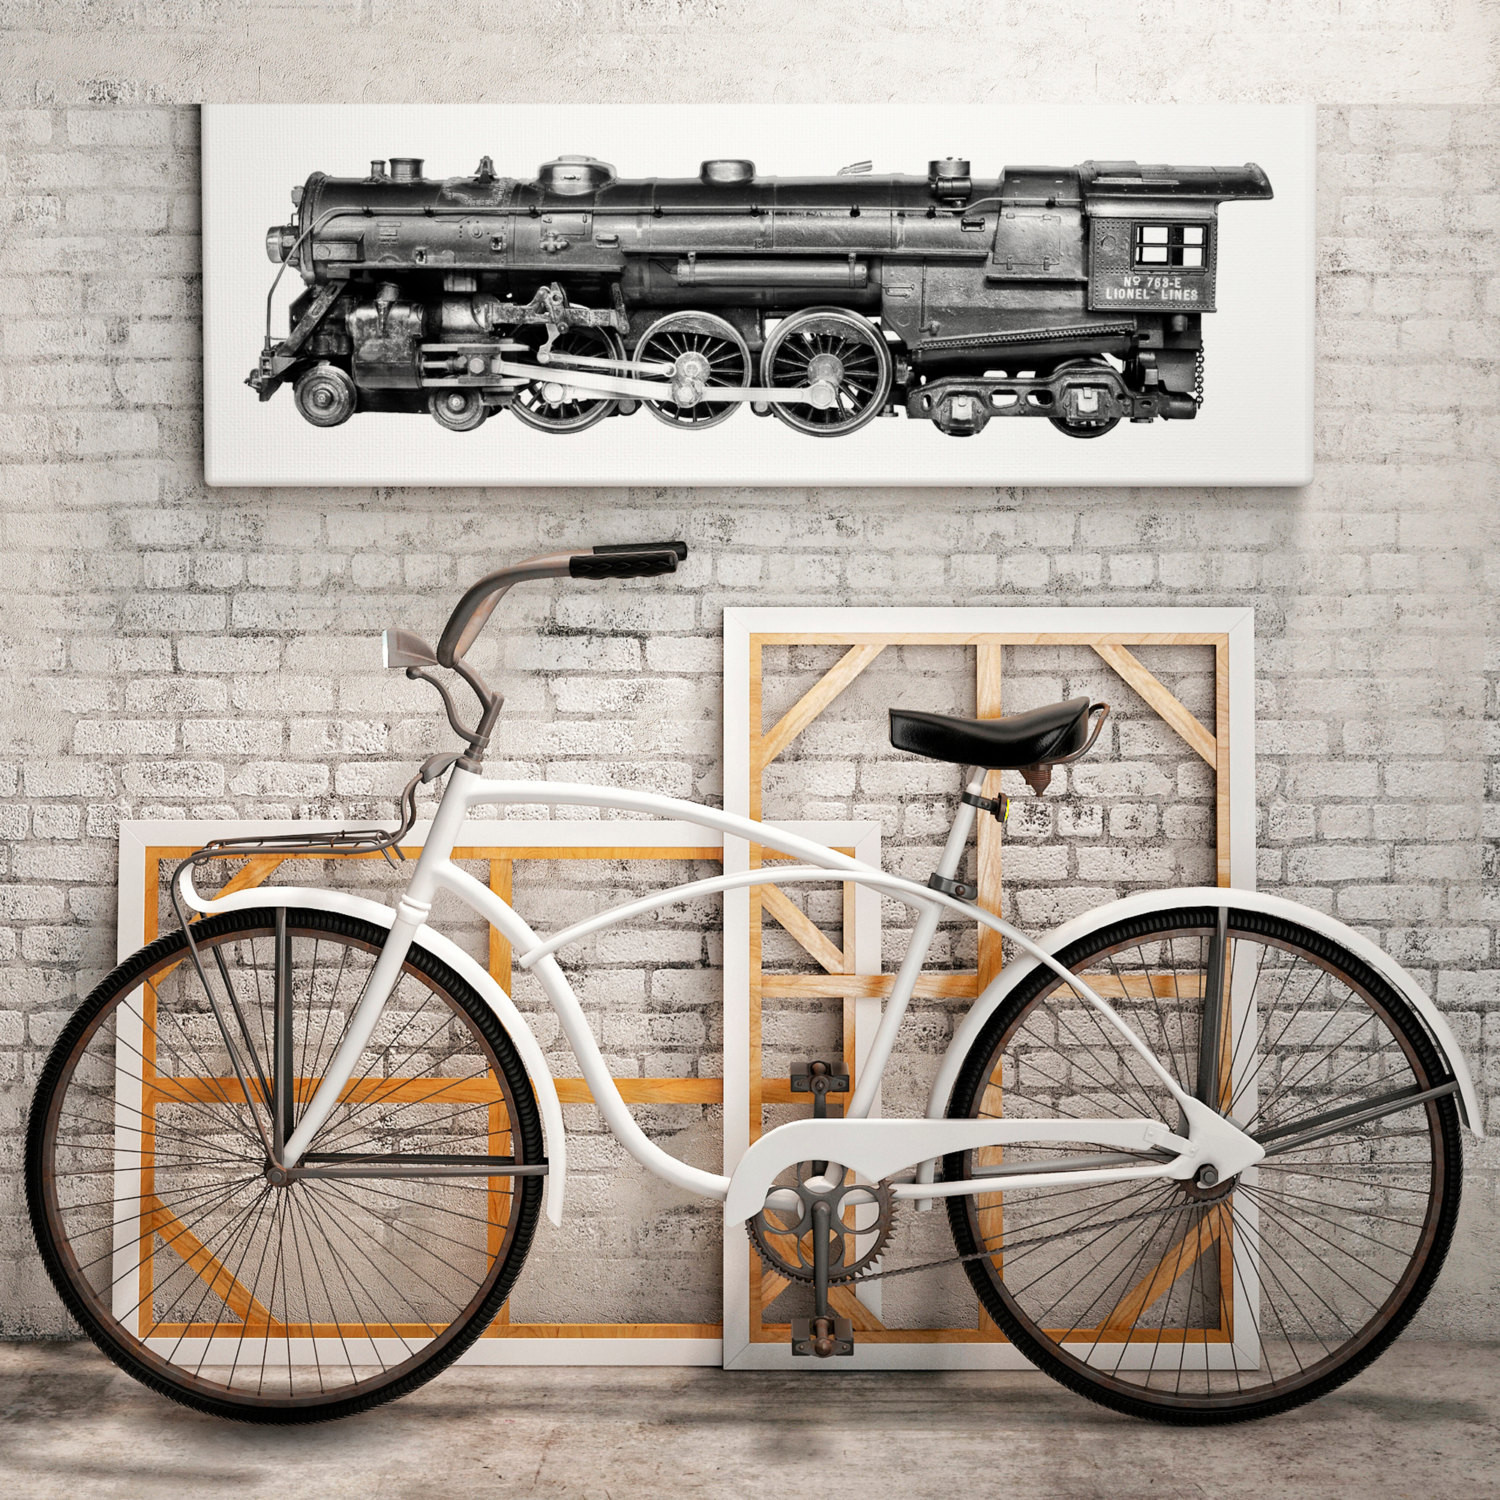 Best ideas about Industrial Wall Art . Save or Pin TRAINS Steampunk decor Industrial wall decor by Now.